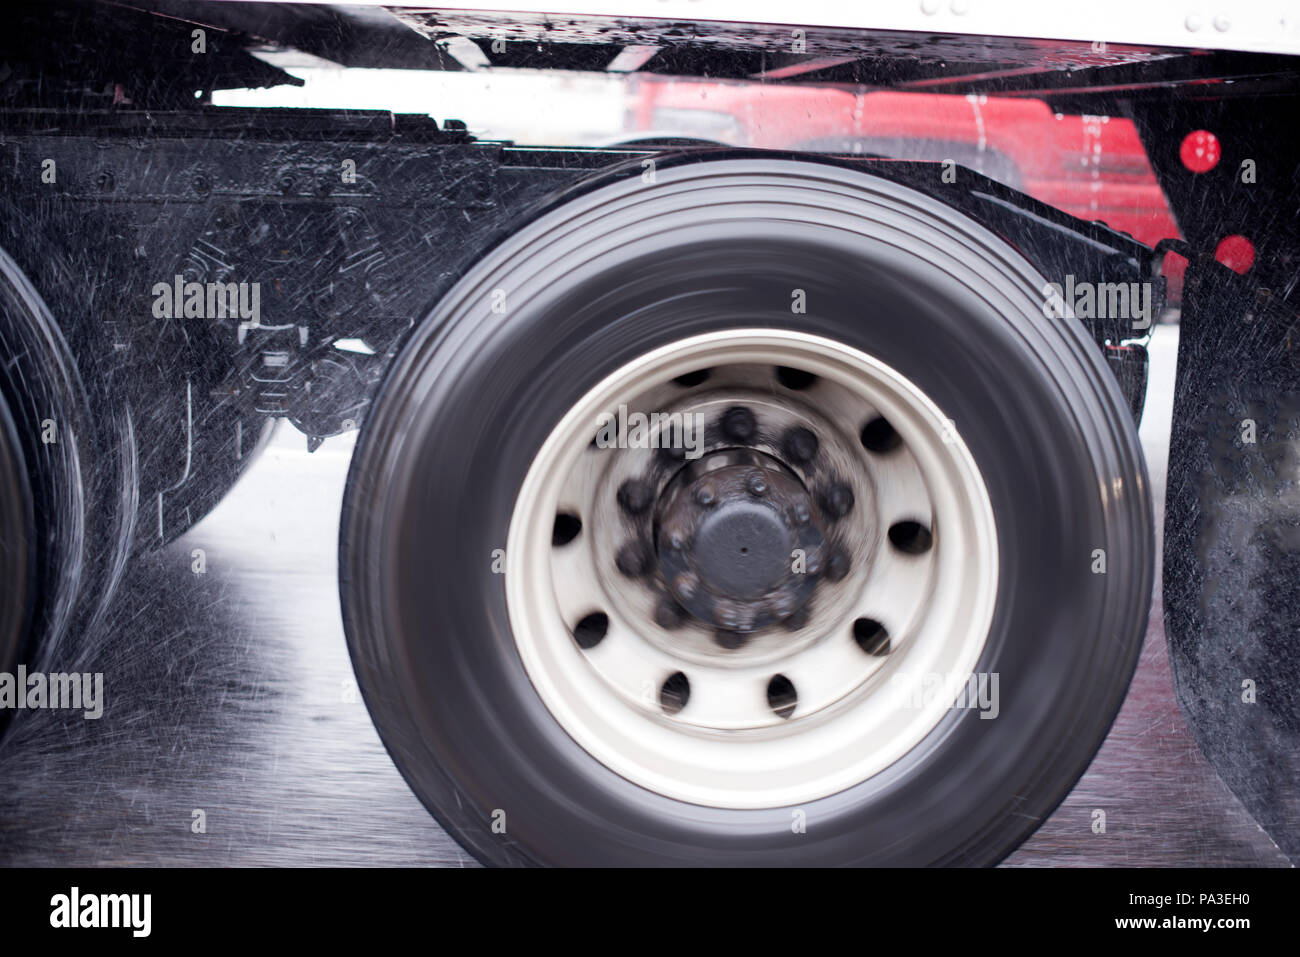 Rotary wheels of long haul moving on the highway big rig semi truck with semi trailer raises rain dust from the wet road surface with light reflection - Stock Image